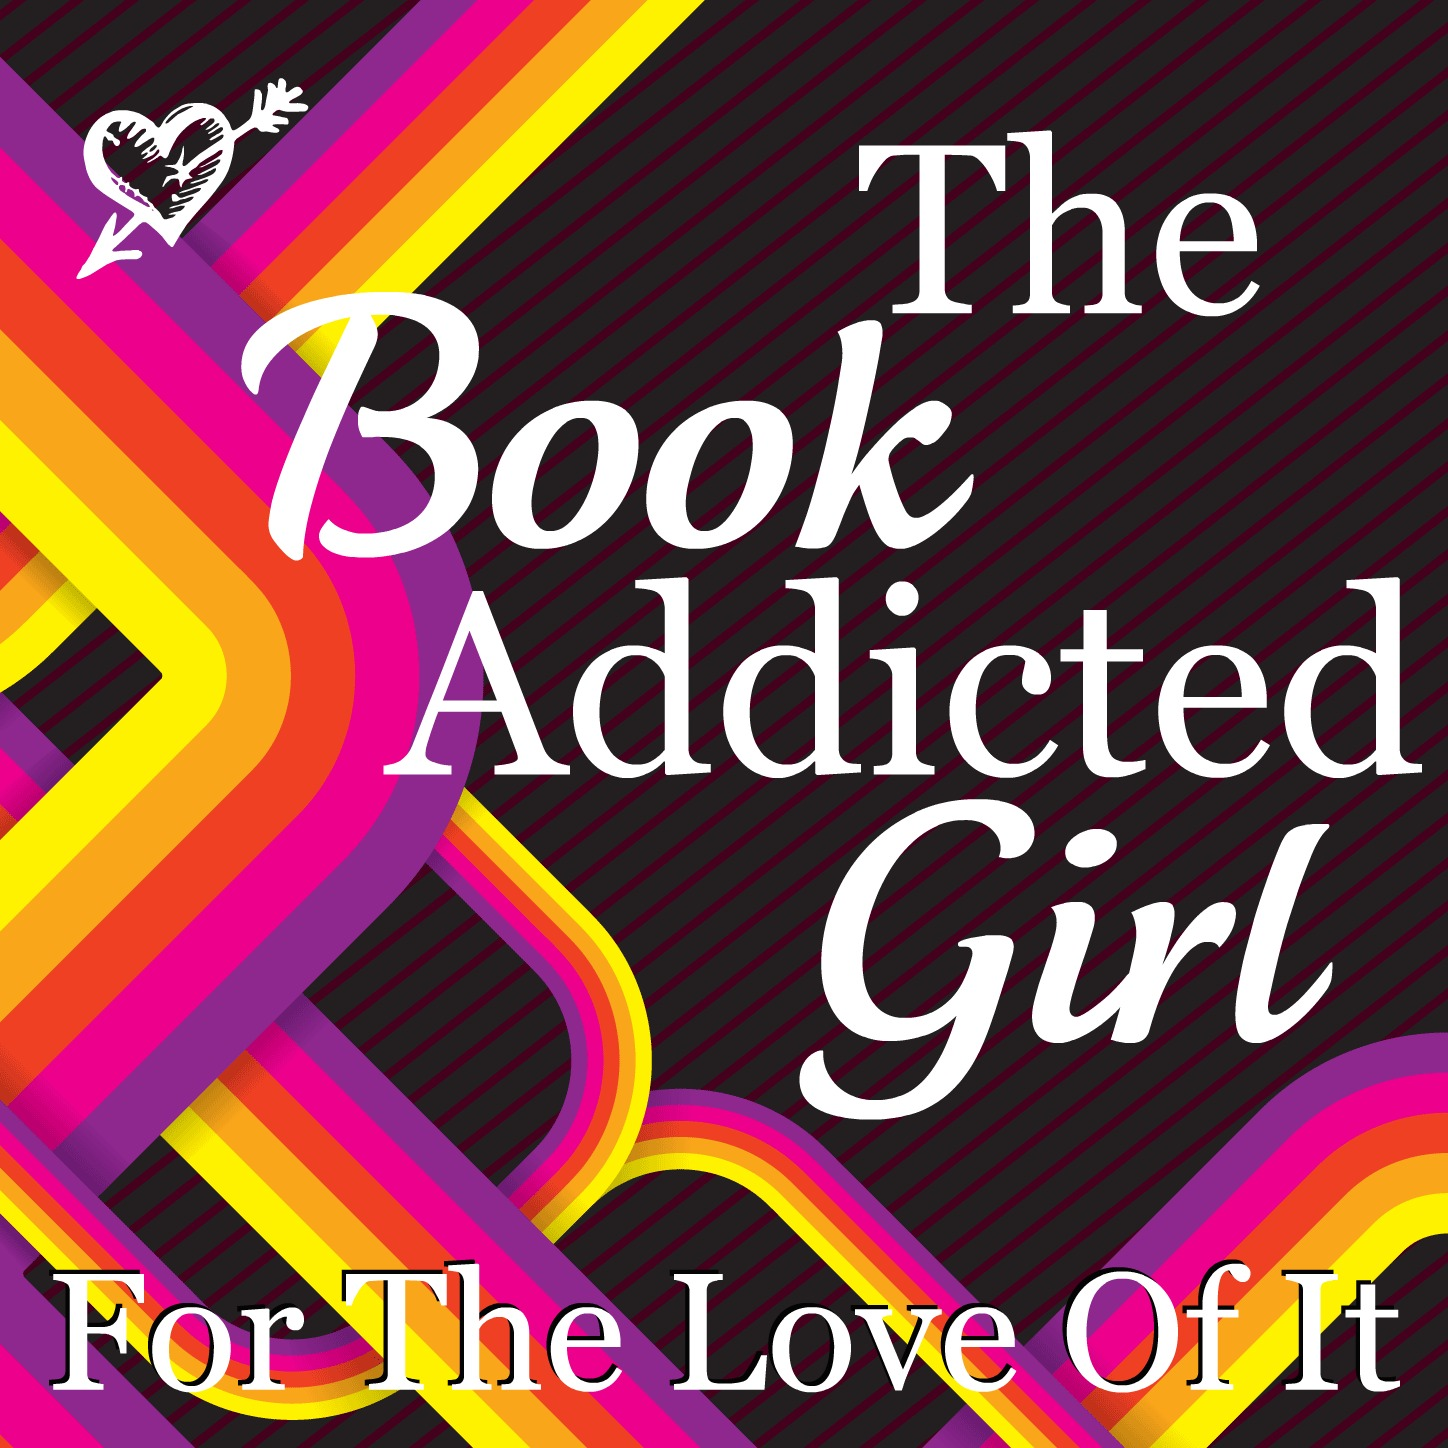 The Book Addicted Girl